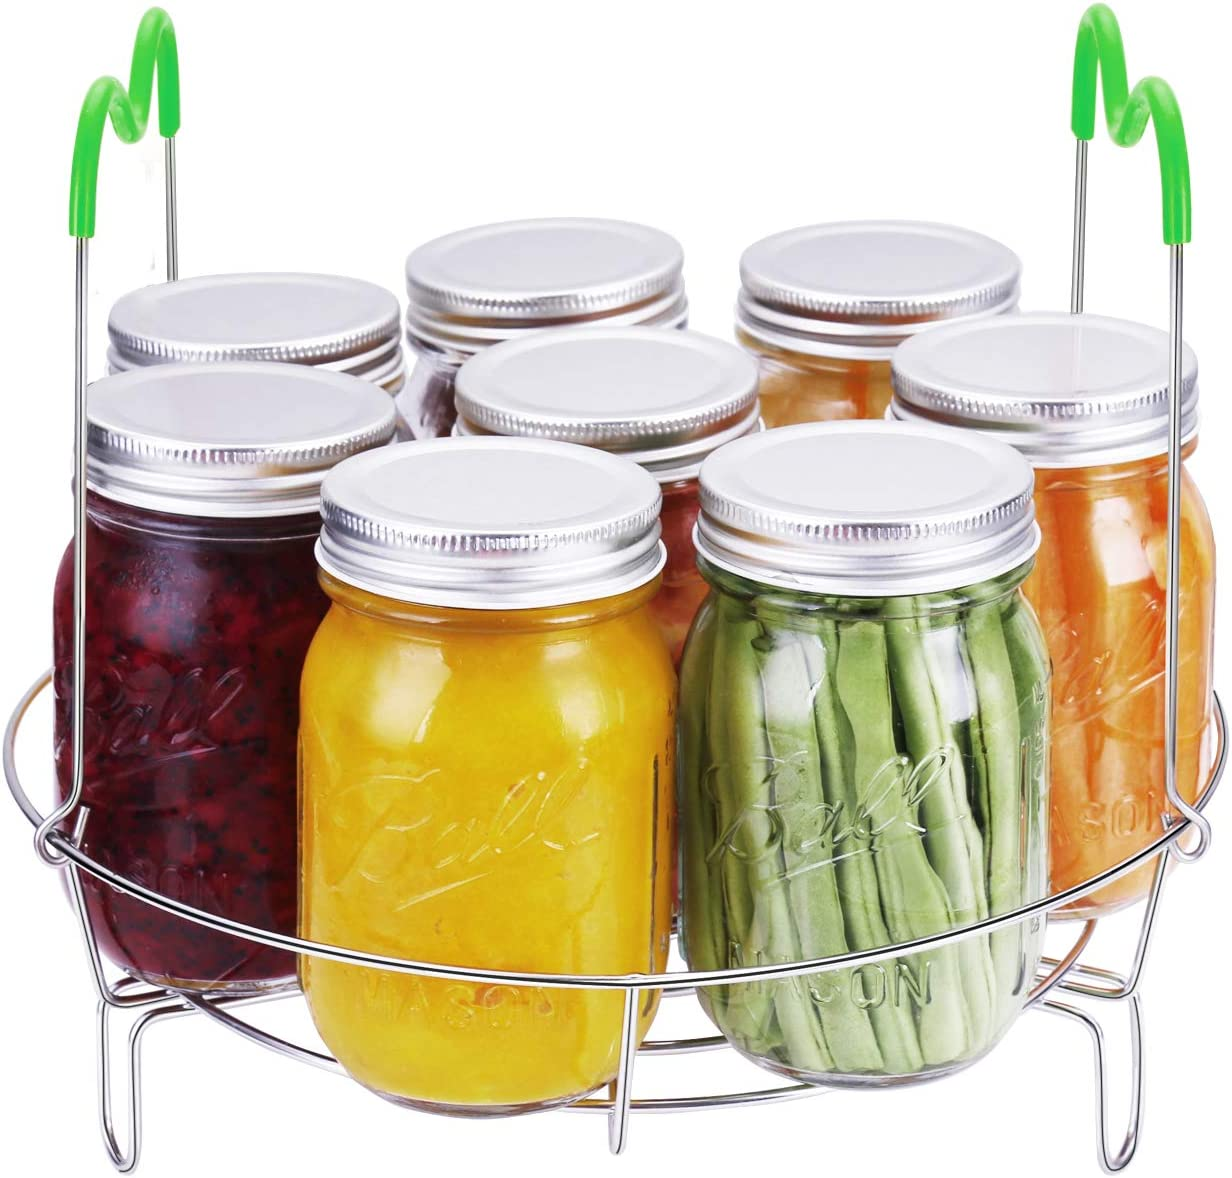 QMT Canning Rack, Stainless Steel Canning Jar Rack with Silicone Handle, Steamer Rack for Water Bath Canning and Pressure Canning, Fit for Kinds of Jars, 11.6 Inch Green Canner Rack (No Jars)